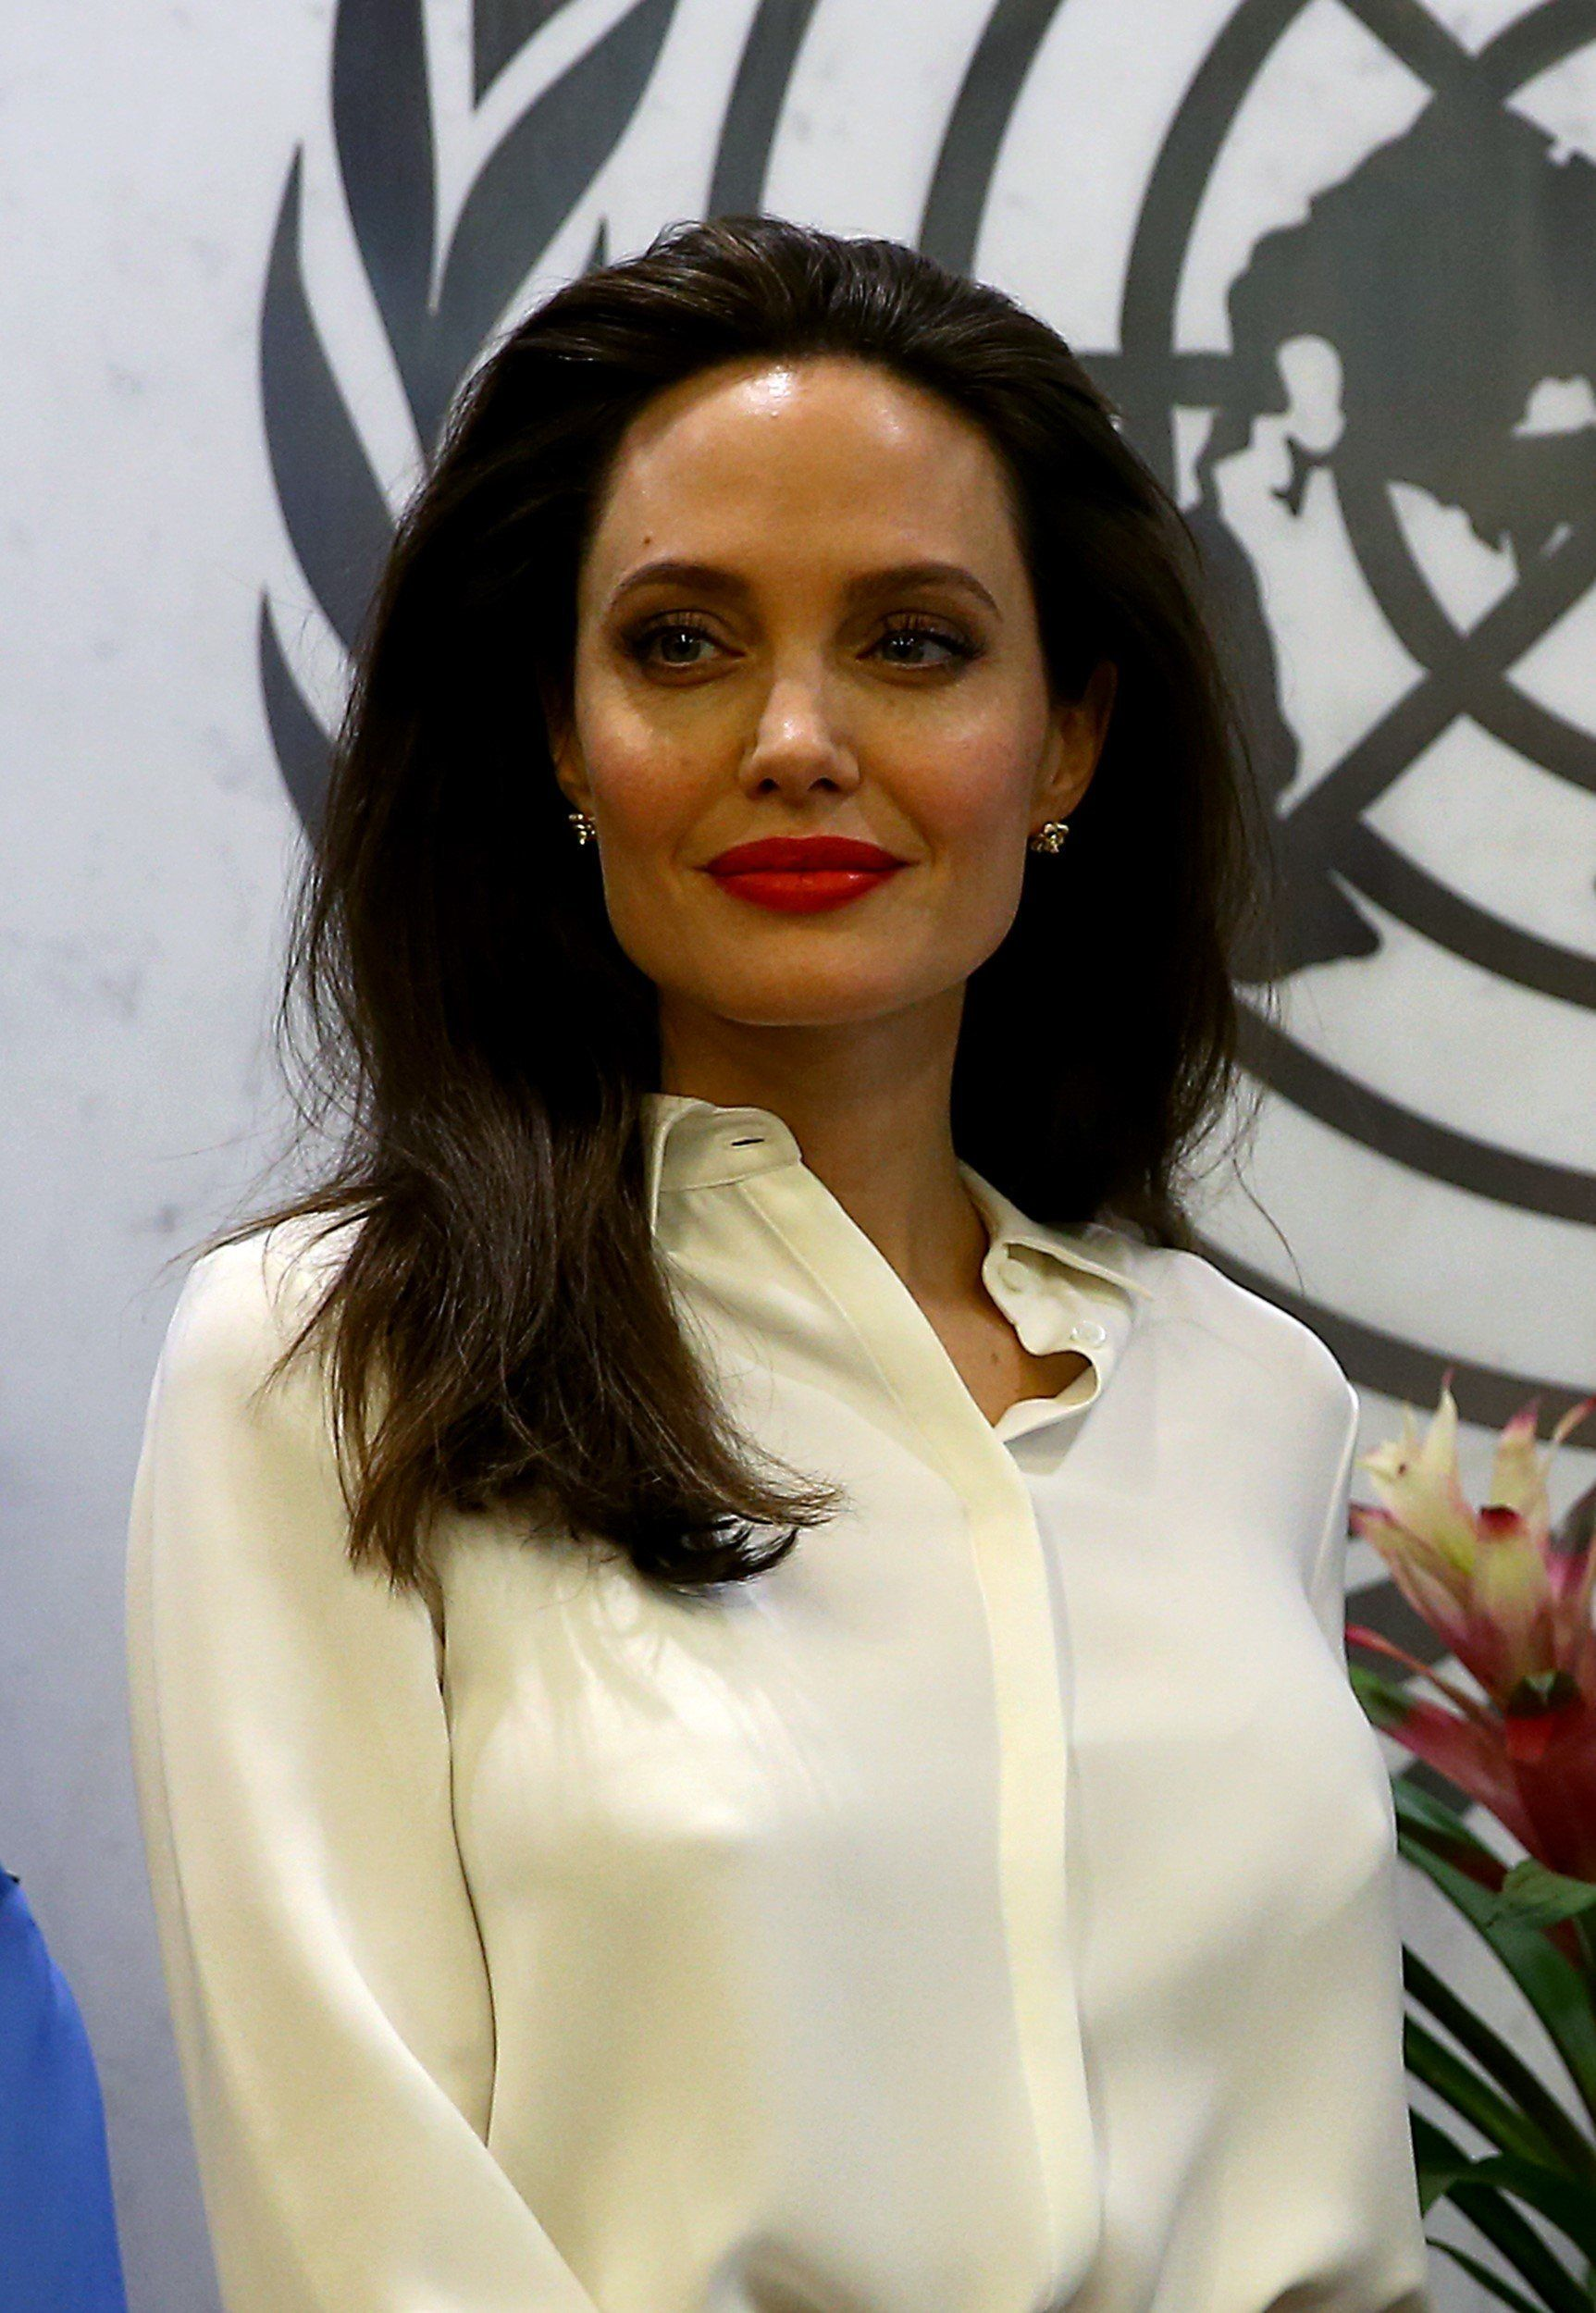 Angelina Jolie Reportedly Volunteered To Be The Bait In Joseph Kony